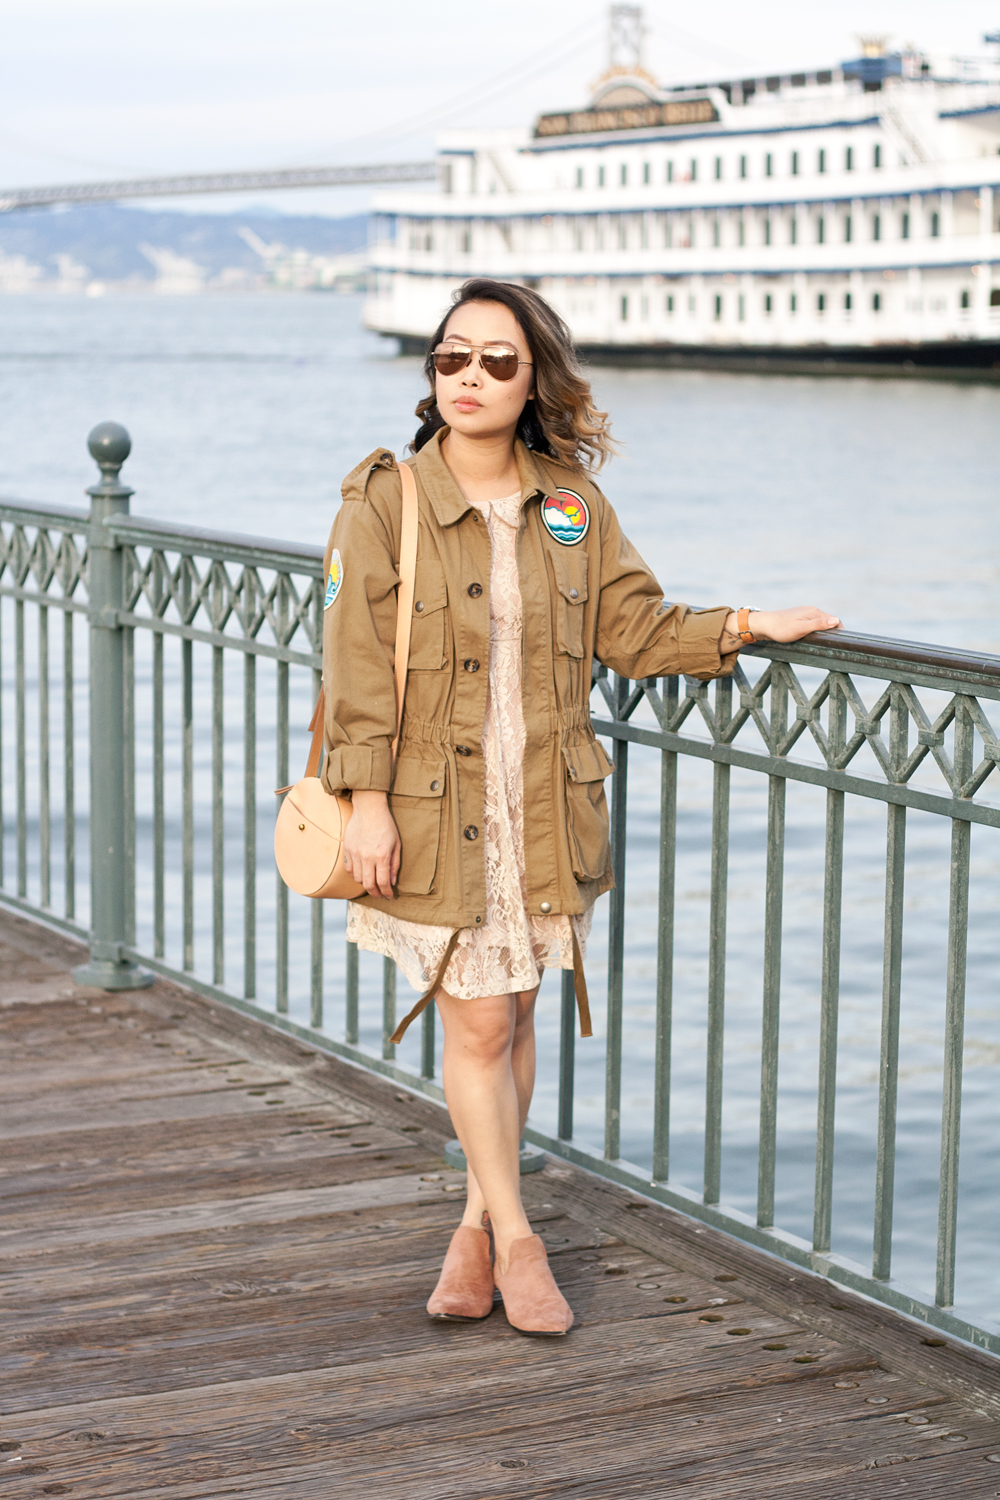 04valentino-patch-jacket-madewell-sf-sanfrancisco-style-fashion